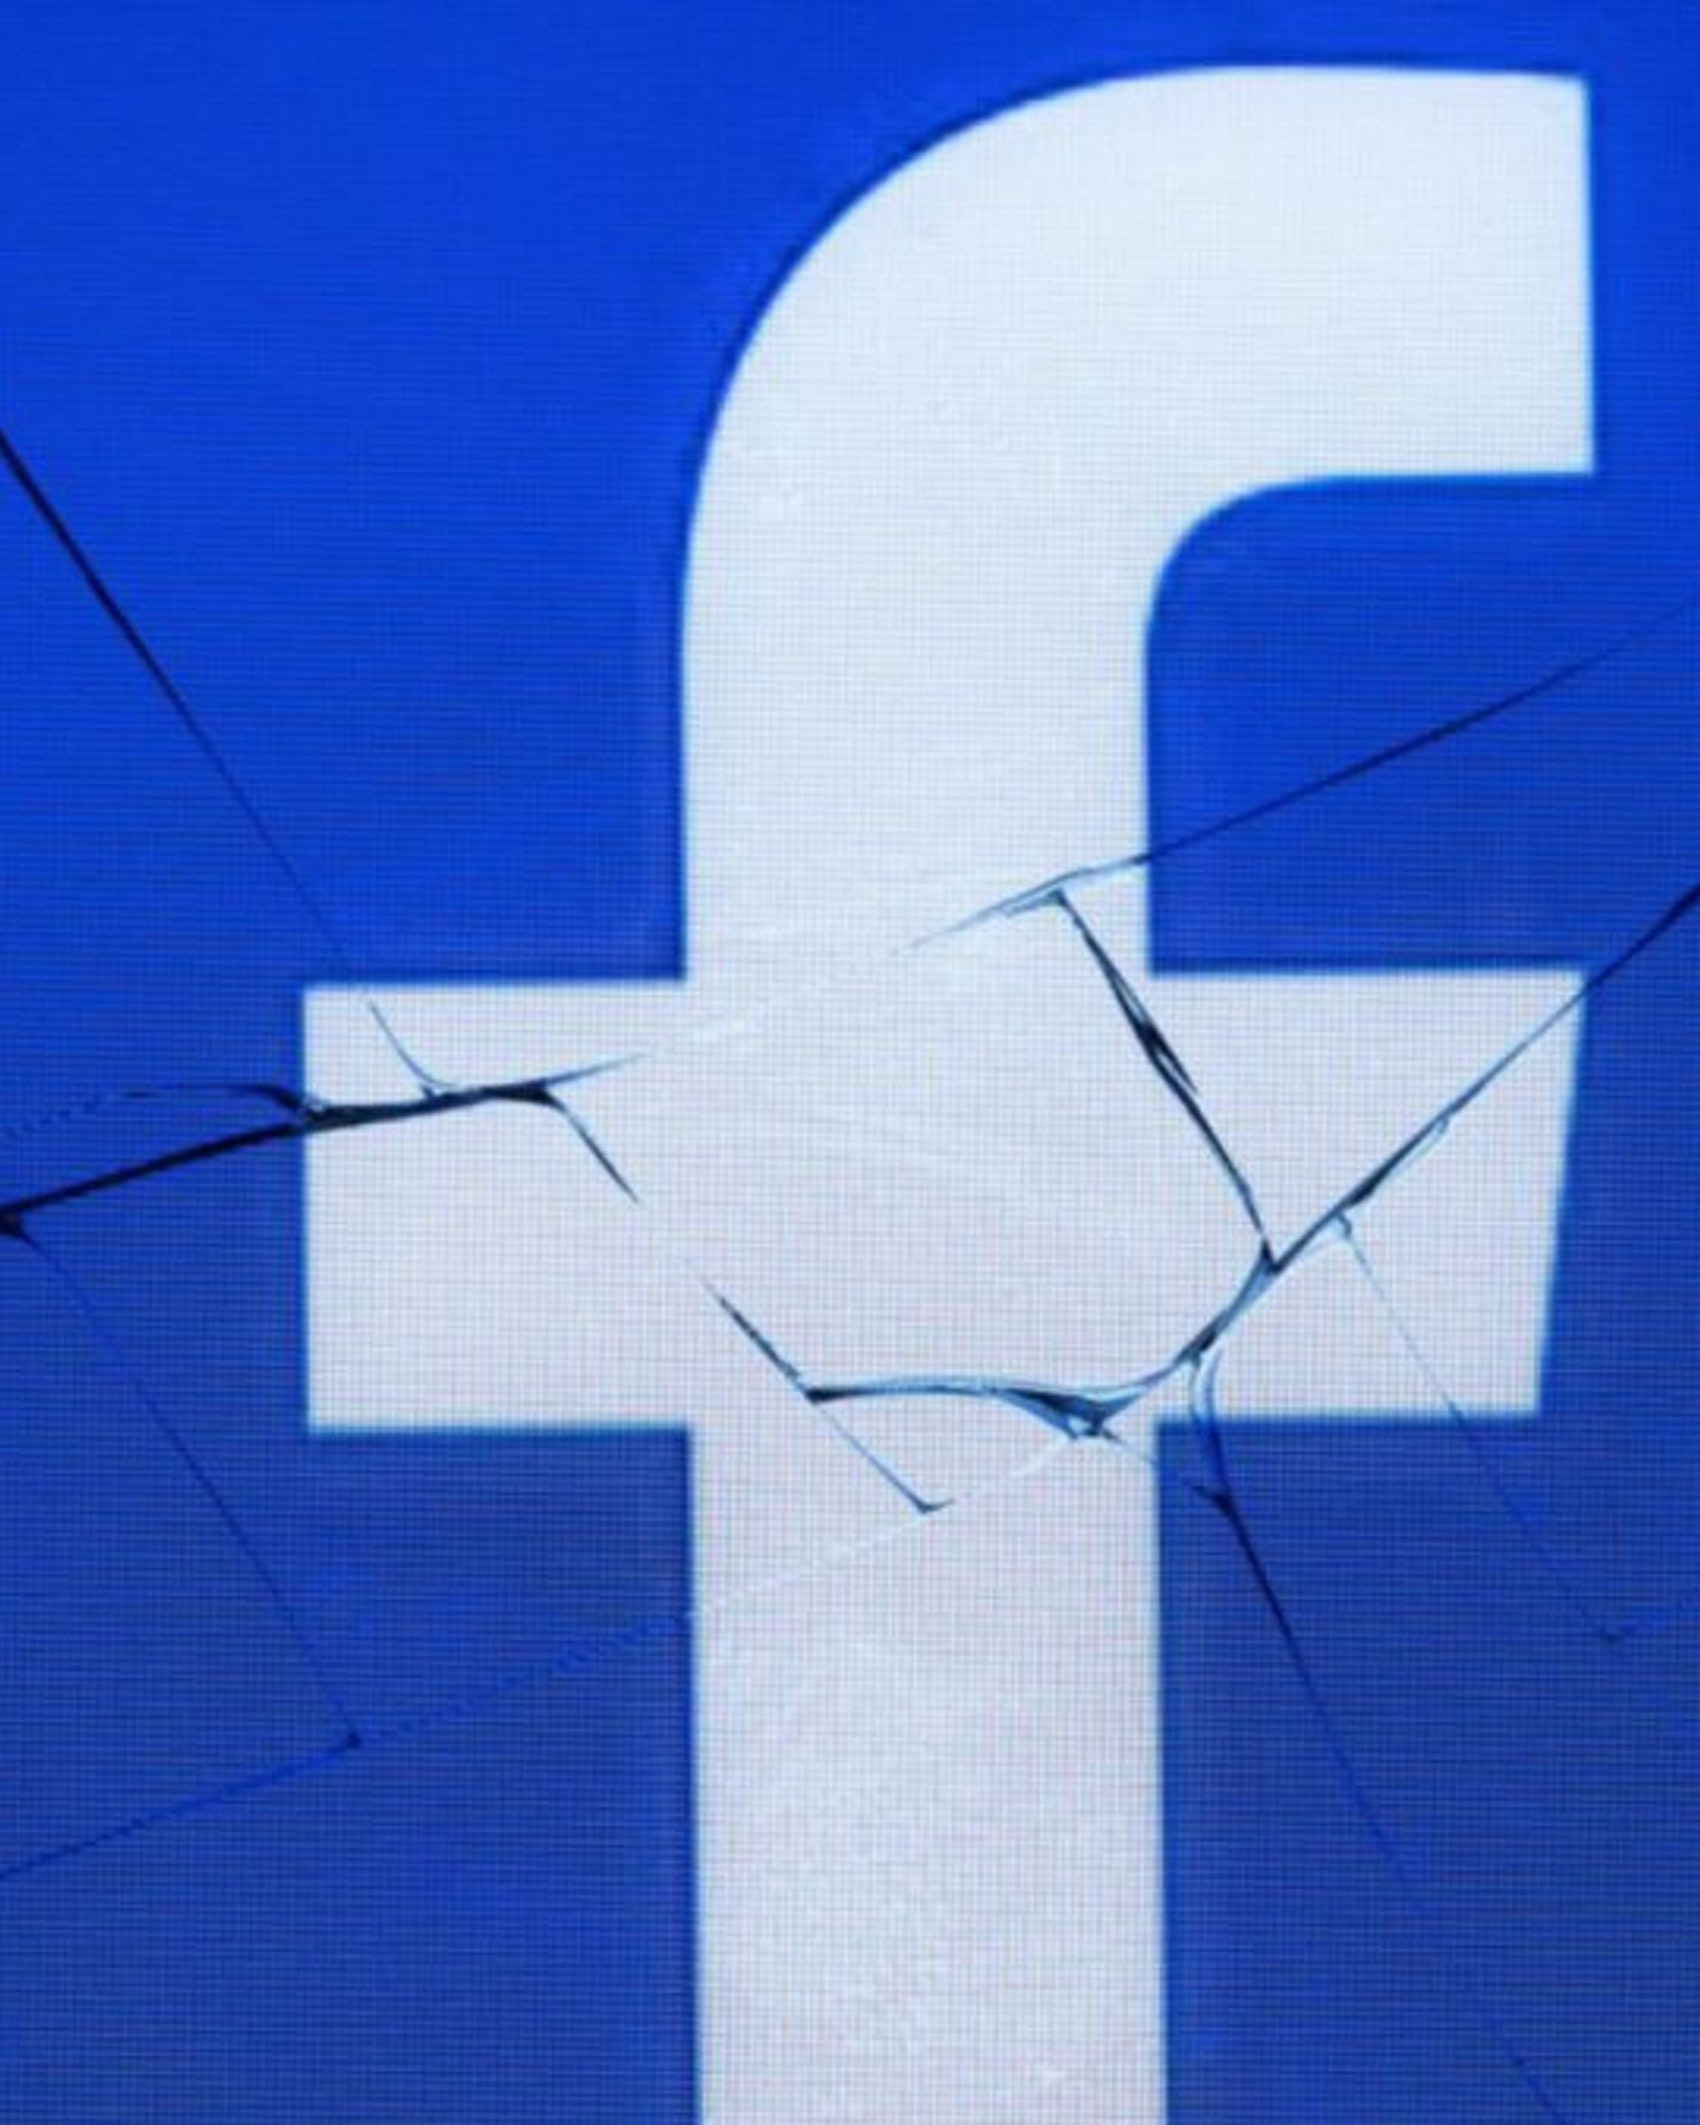 A picture taken in Paris on May 16, 2018 shows the logo of the social network Facebook on a broken screen of a mobile phone.